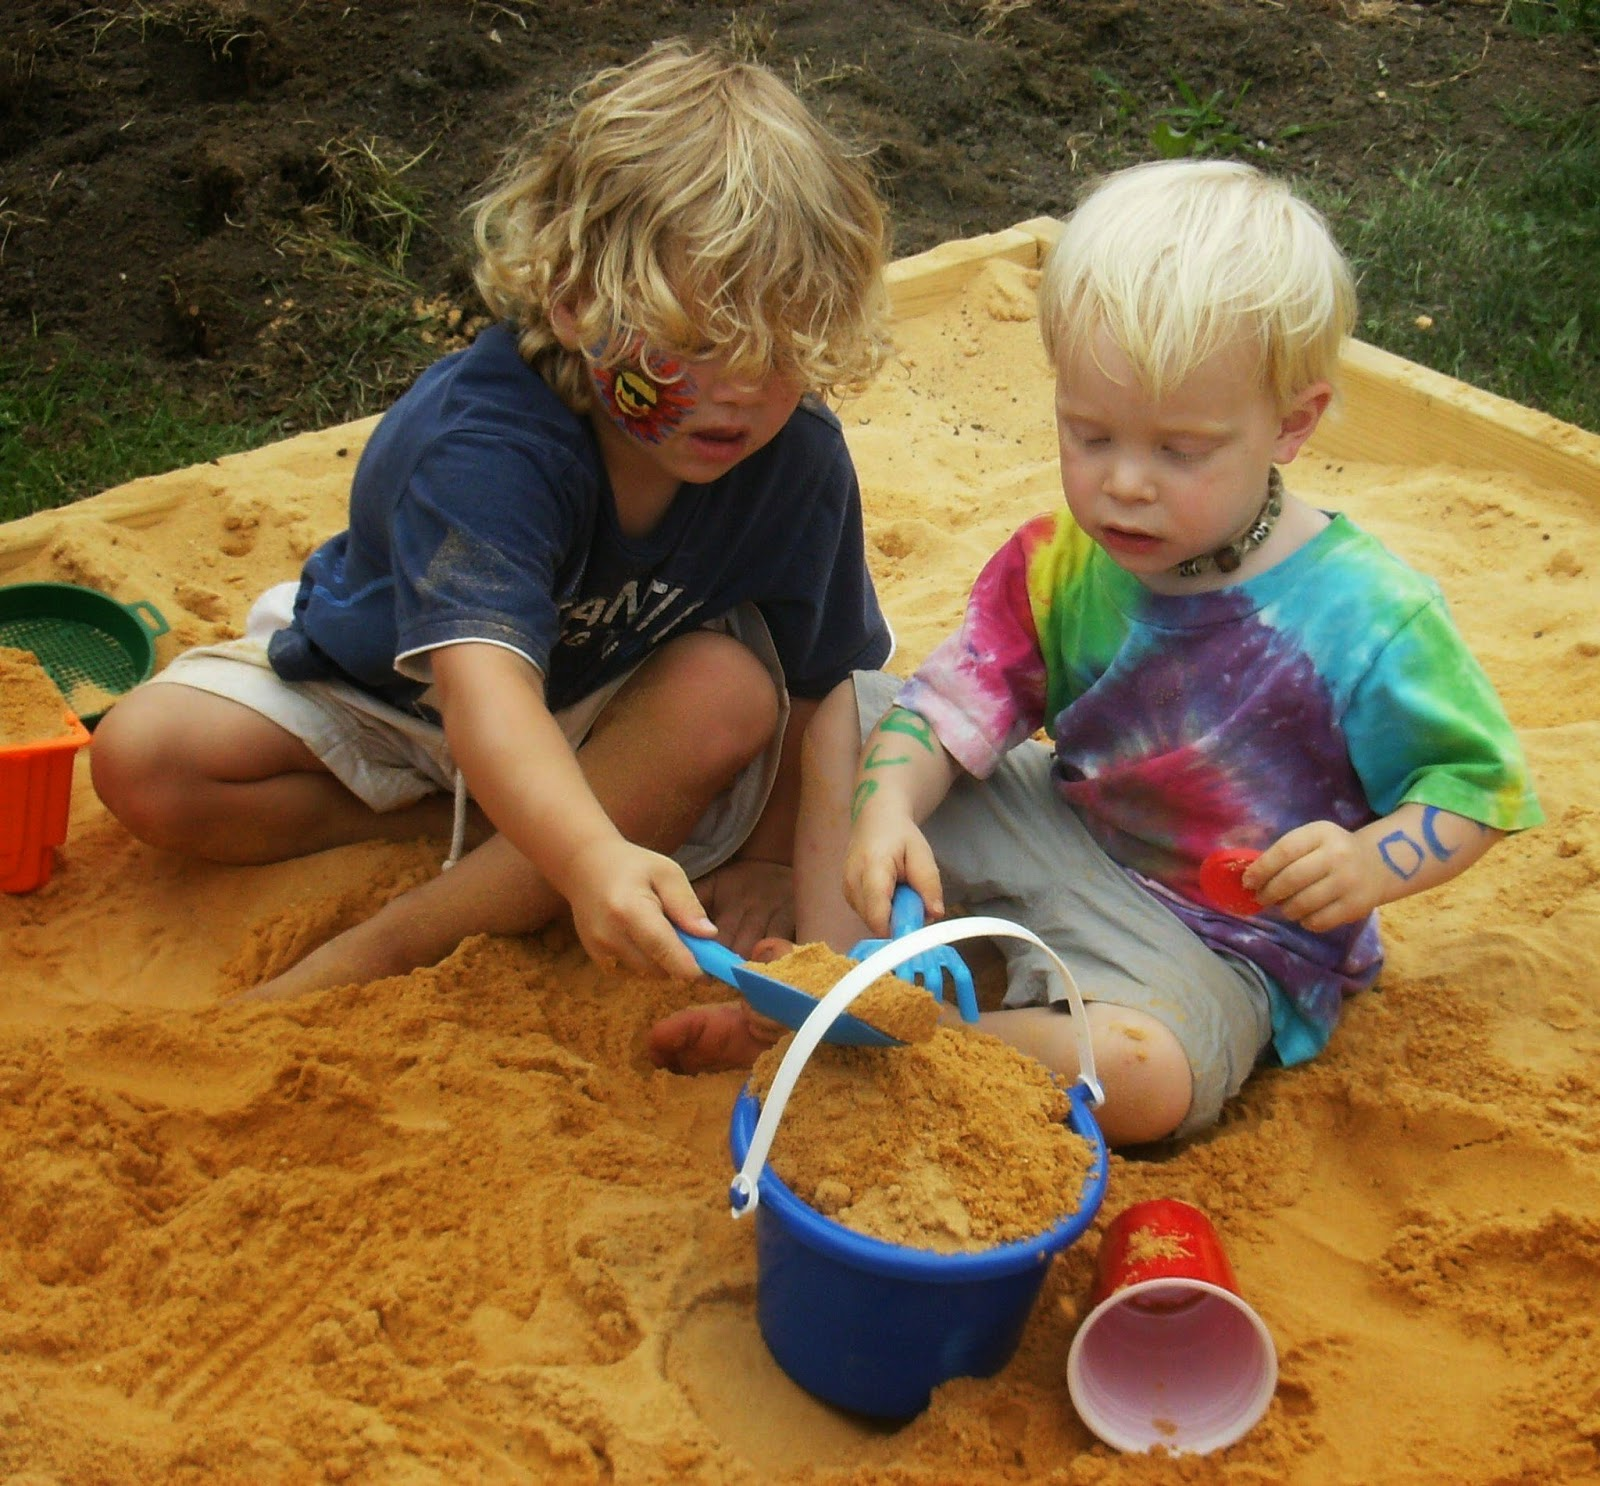 WATCH 2 Kids 1 Sandbox | Best Shockers